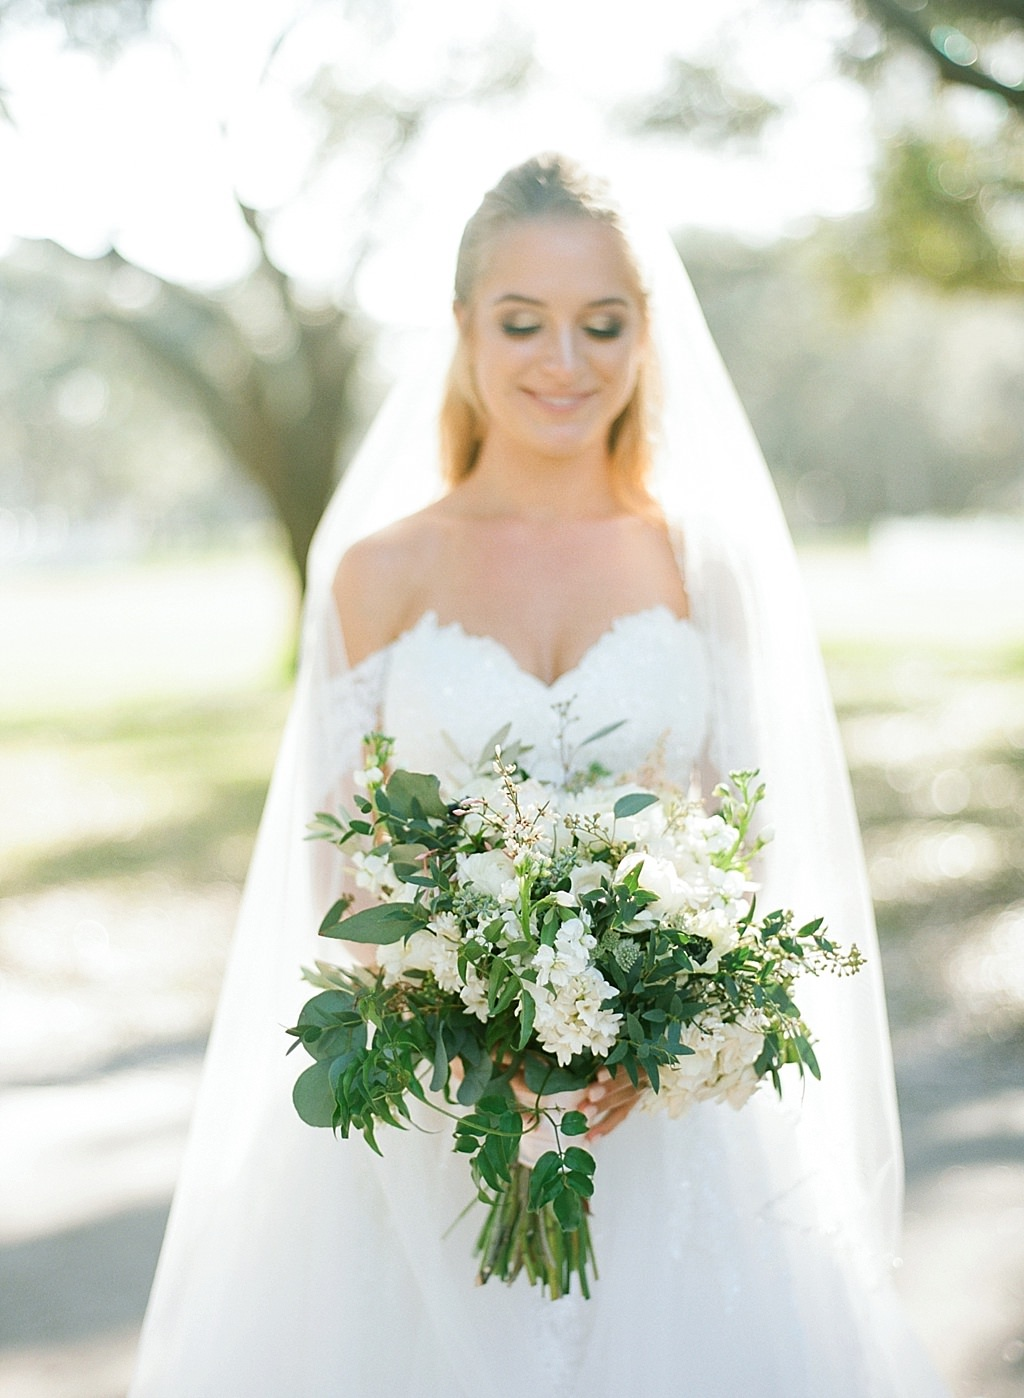 Elegant St. Pete Bride Beauty Wedding Portrait in Sweetheart Off the Shoulder Lace Ballgown Wedding Dress Holding Garden Inspired White Roses, Eucalyptus and Greenery Floral Bridal Bouquet